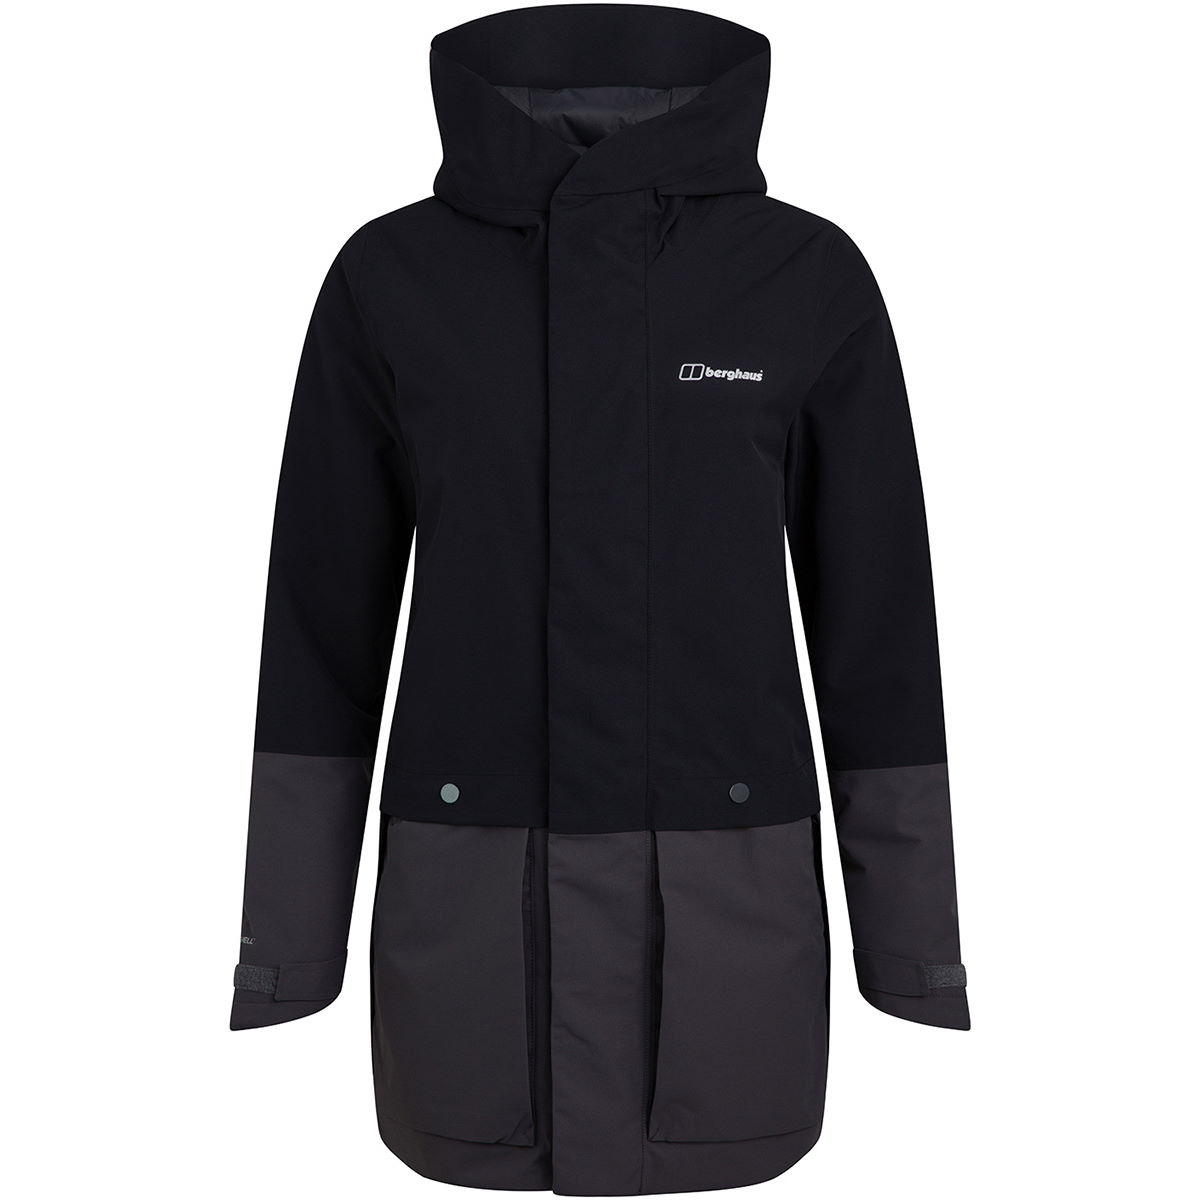 Berghaus Berghaus Womens Norrah Insulated Waterproof Jacket   Jackets